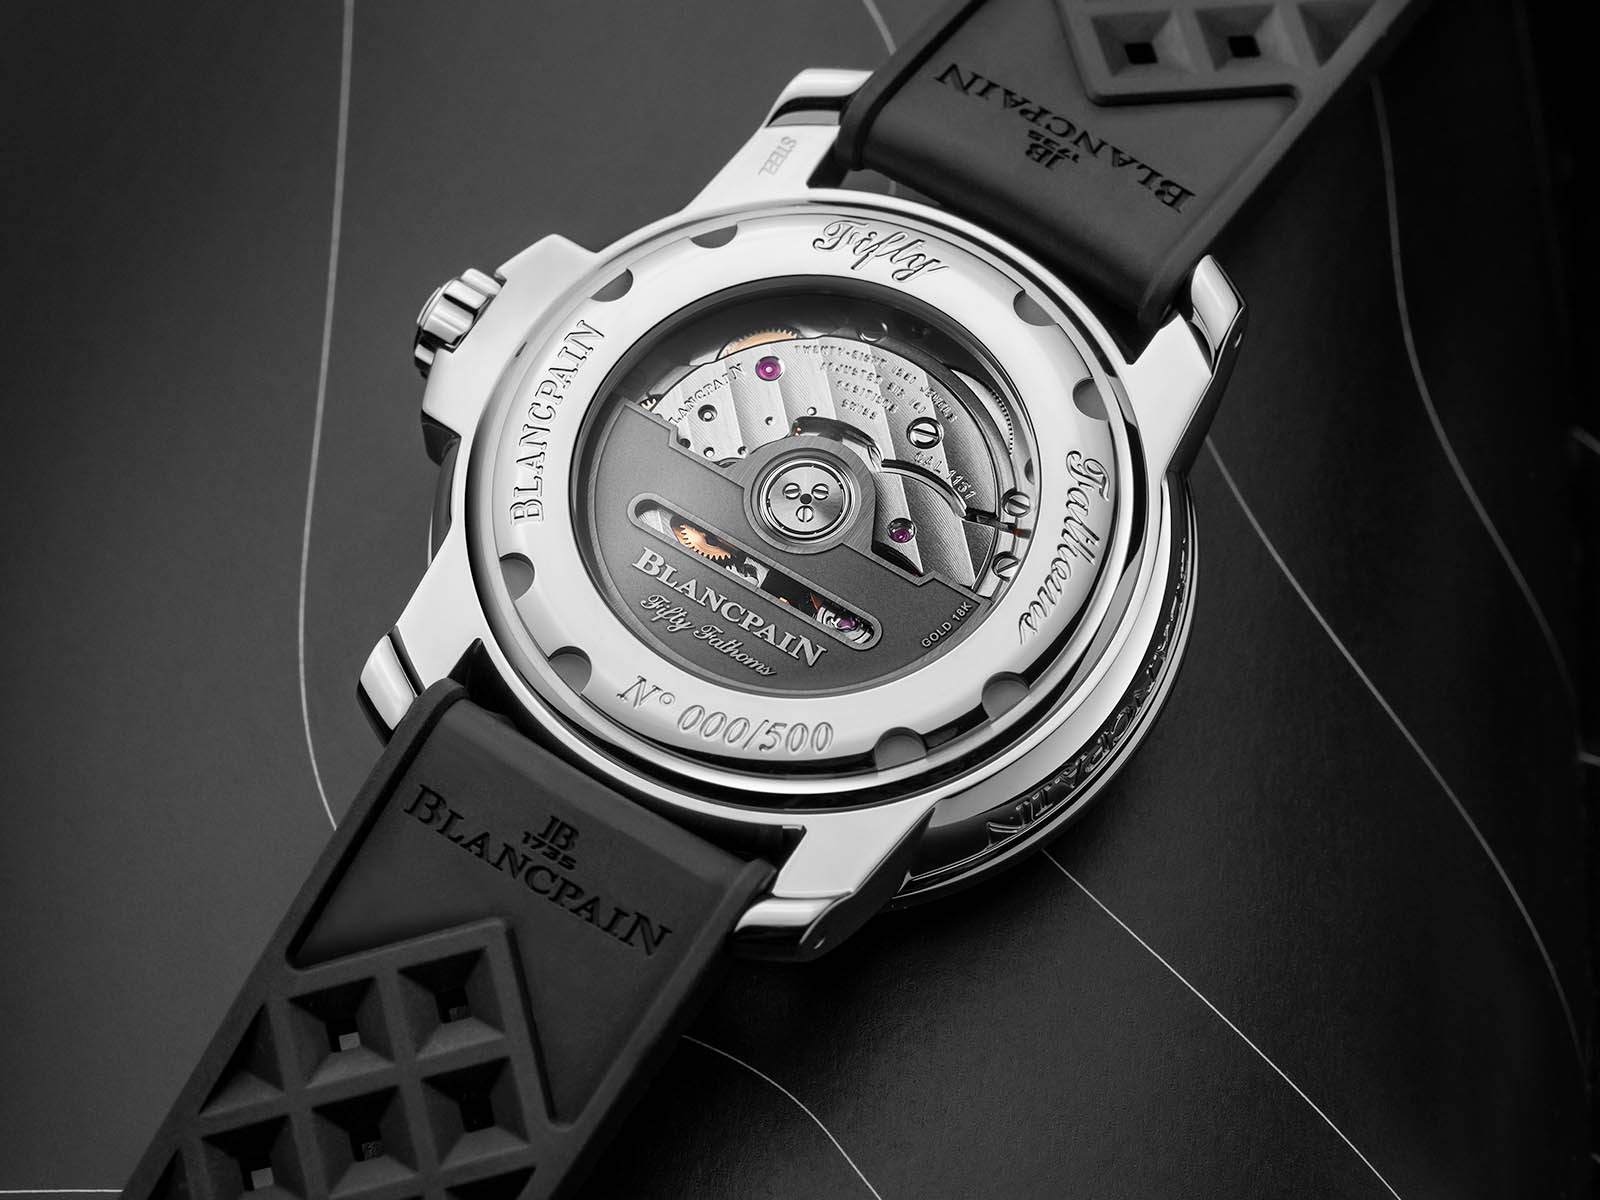 5008d-1130-b64a-blancpain-tribute-to-fifty-fathoms-no-rad-limited-edition-8.jpg